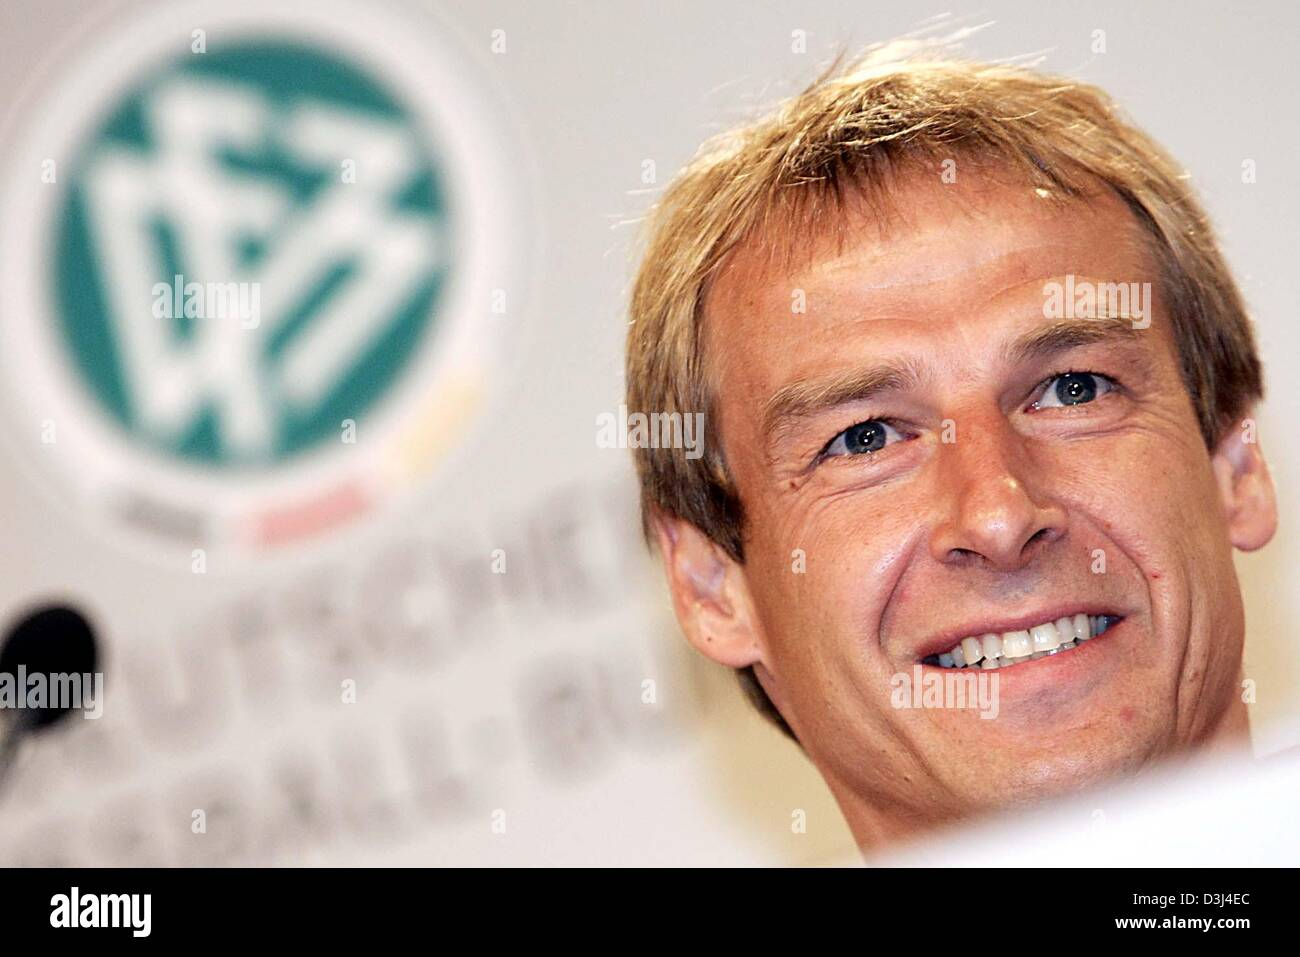 (dpa) - Juergen Klinsmann, head coach of the German national soccer team, comments on the shape and state of his - Stock Image